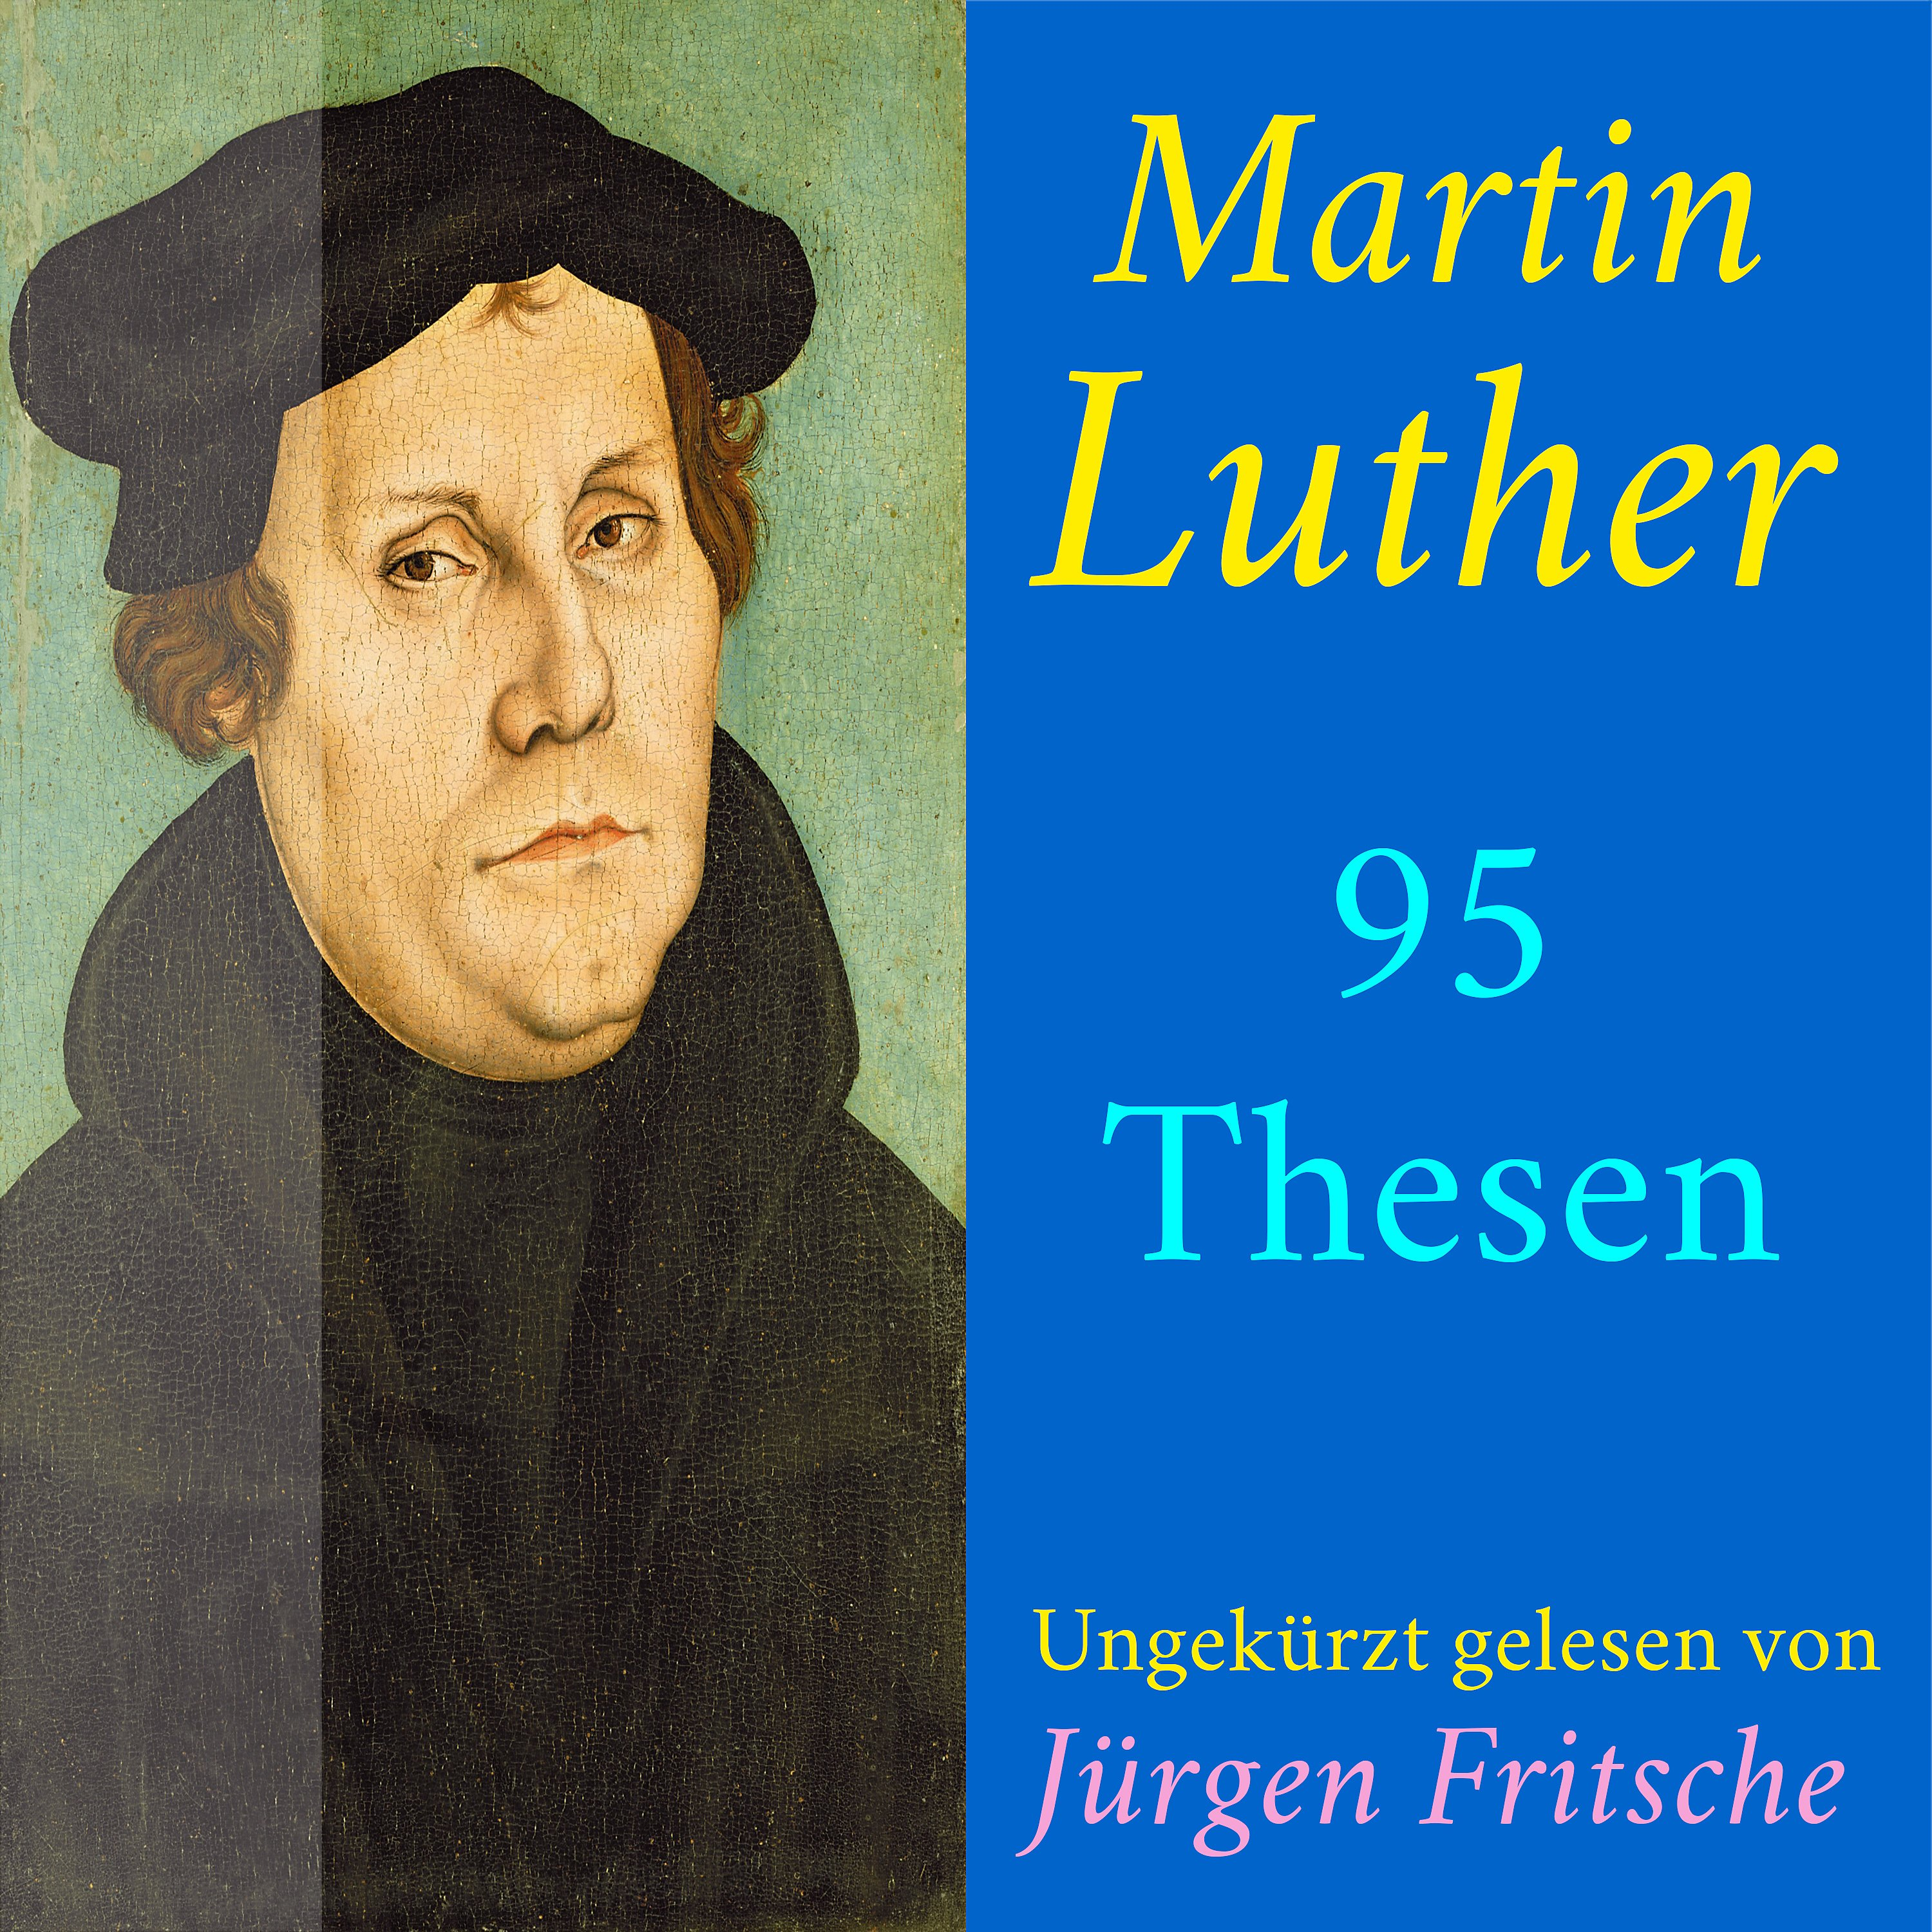 Martin Luther 95 Thesen Des Theologen Dr Martin Luther